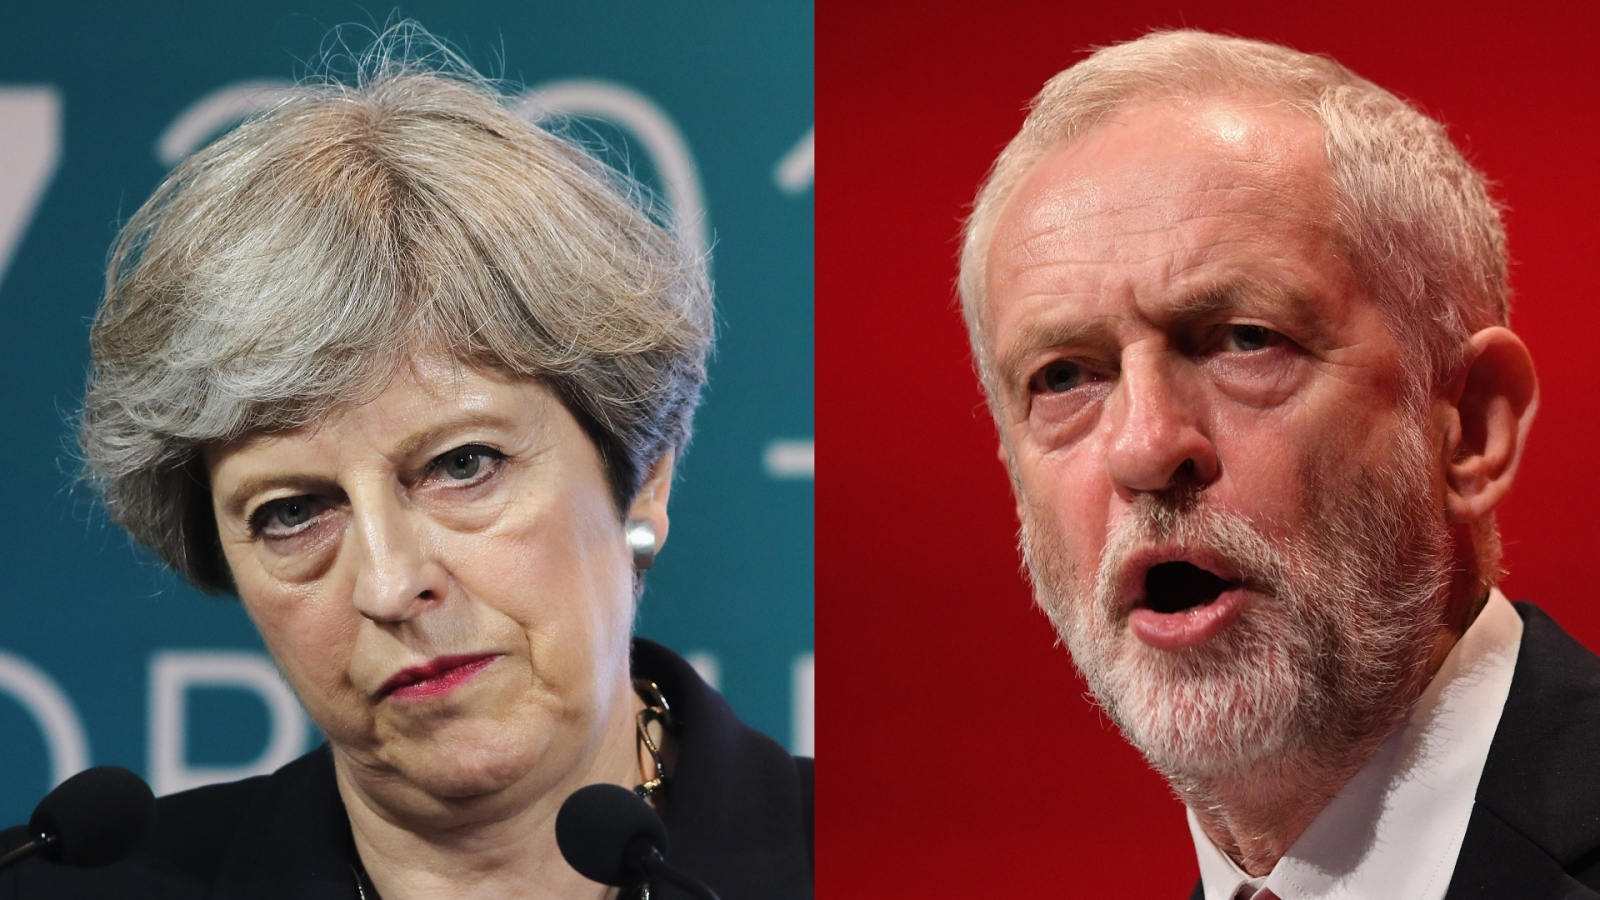 may-vs-corbyn-uk-party-leaders-clash-getting-eu-brexit-deal